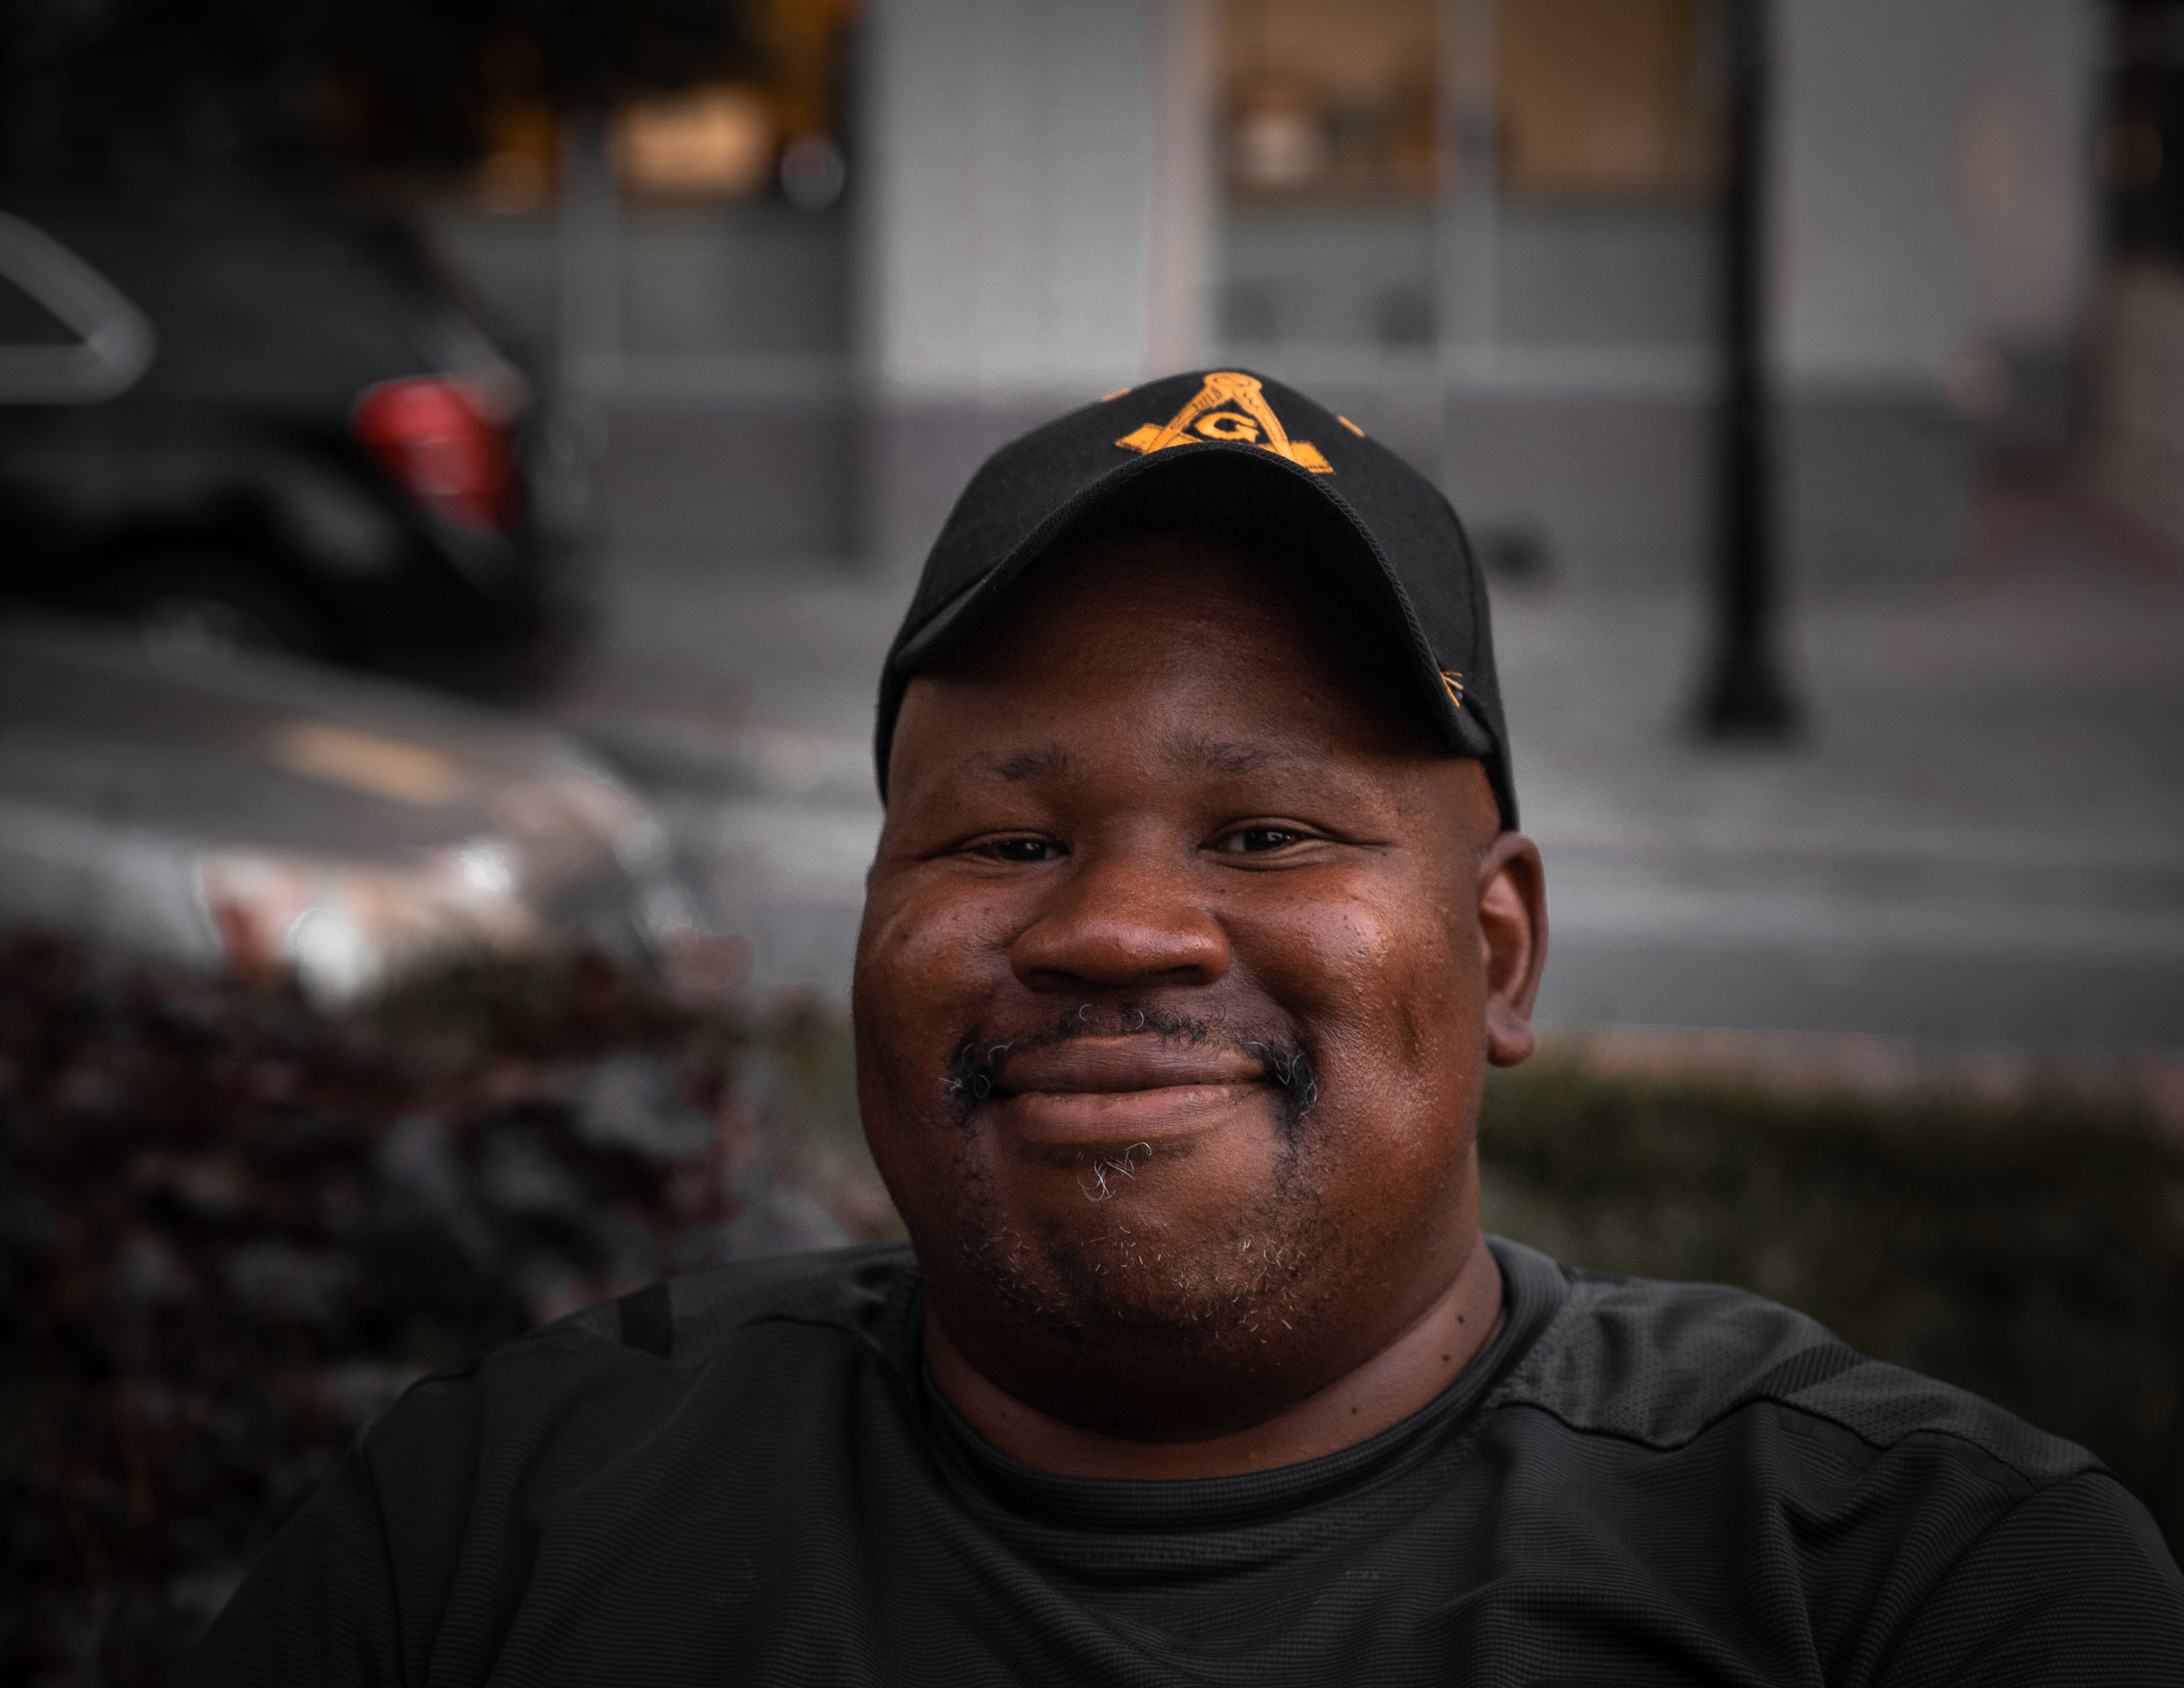 """You have to sit down and talk to people. I come out here and sit and eat with the homeless community almost every day. It's simple, all people are worth valuing."""